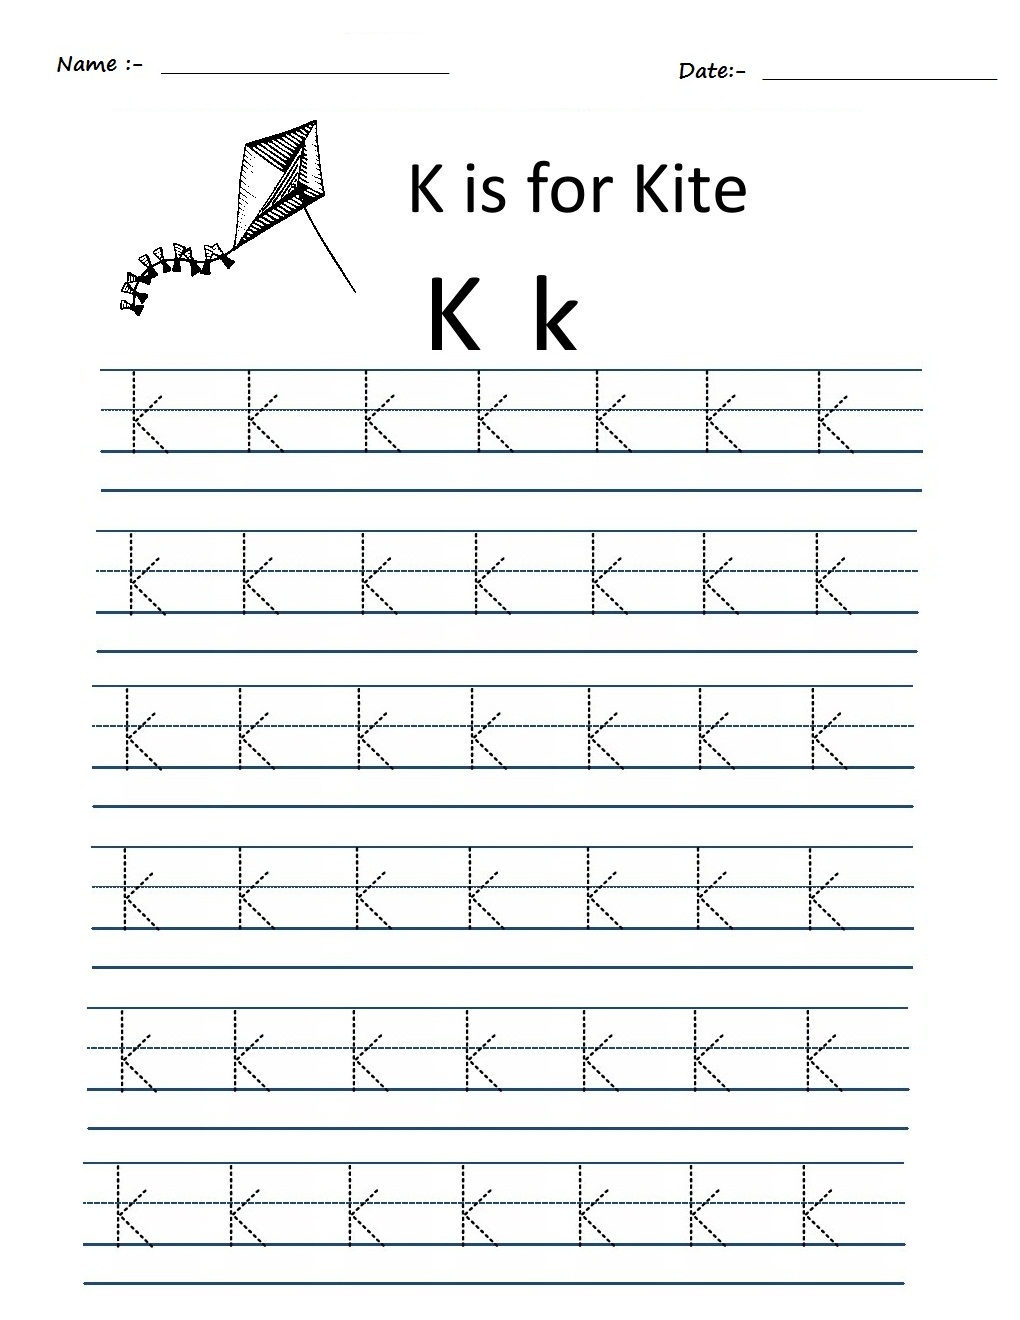 Kindergarten Worksheets Alphabet Tracing Worksheets k – Letter K Worksheets for Preschoolers